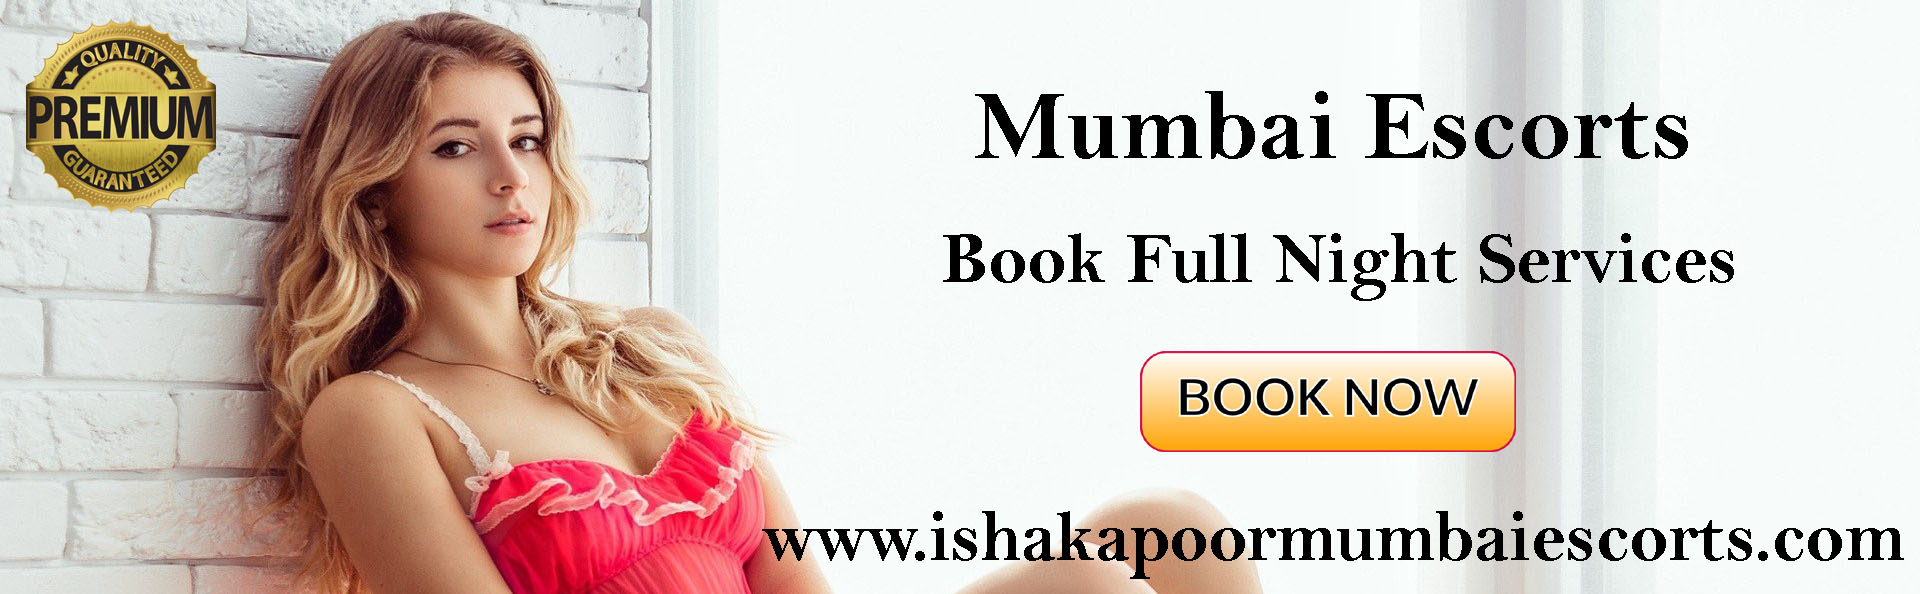 Mumbai Call Girls Banner3